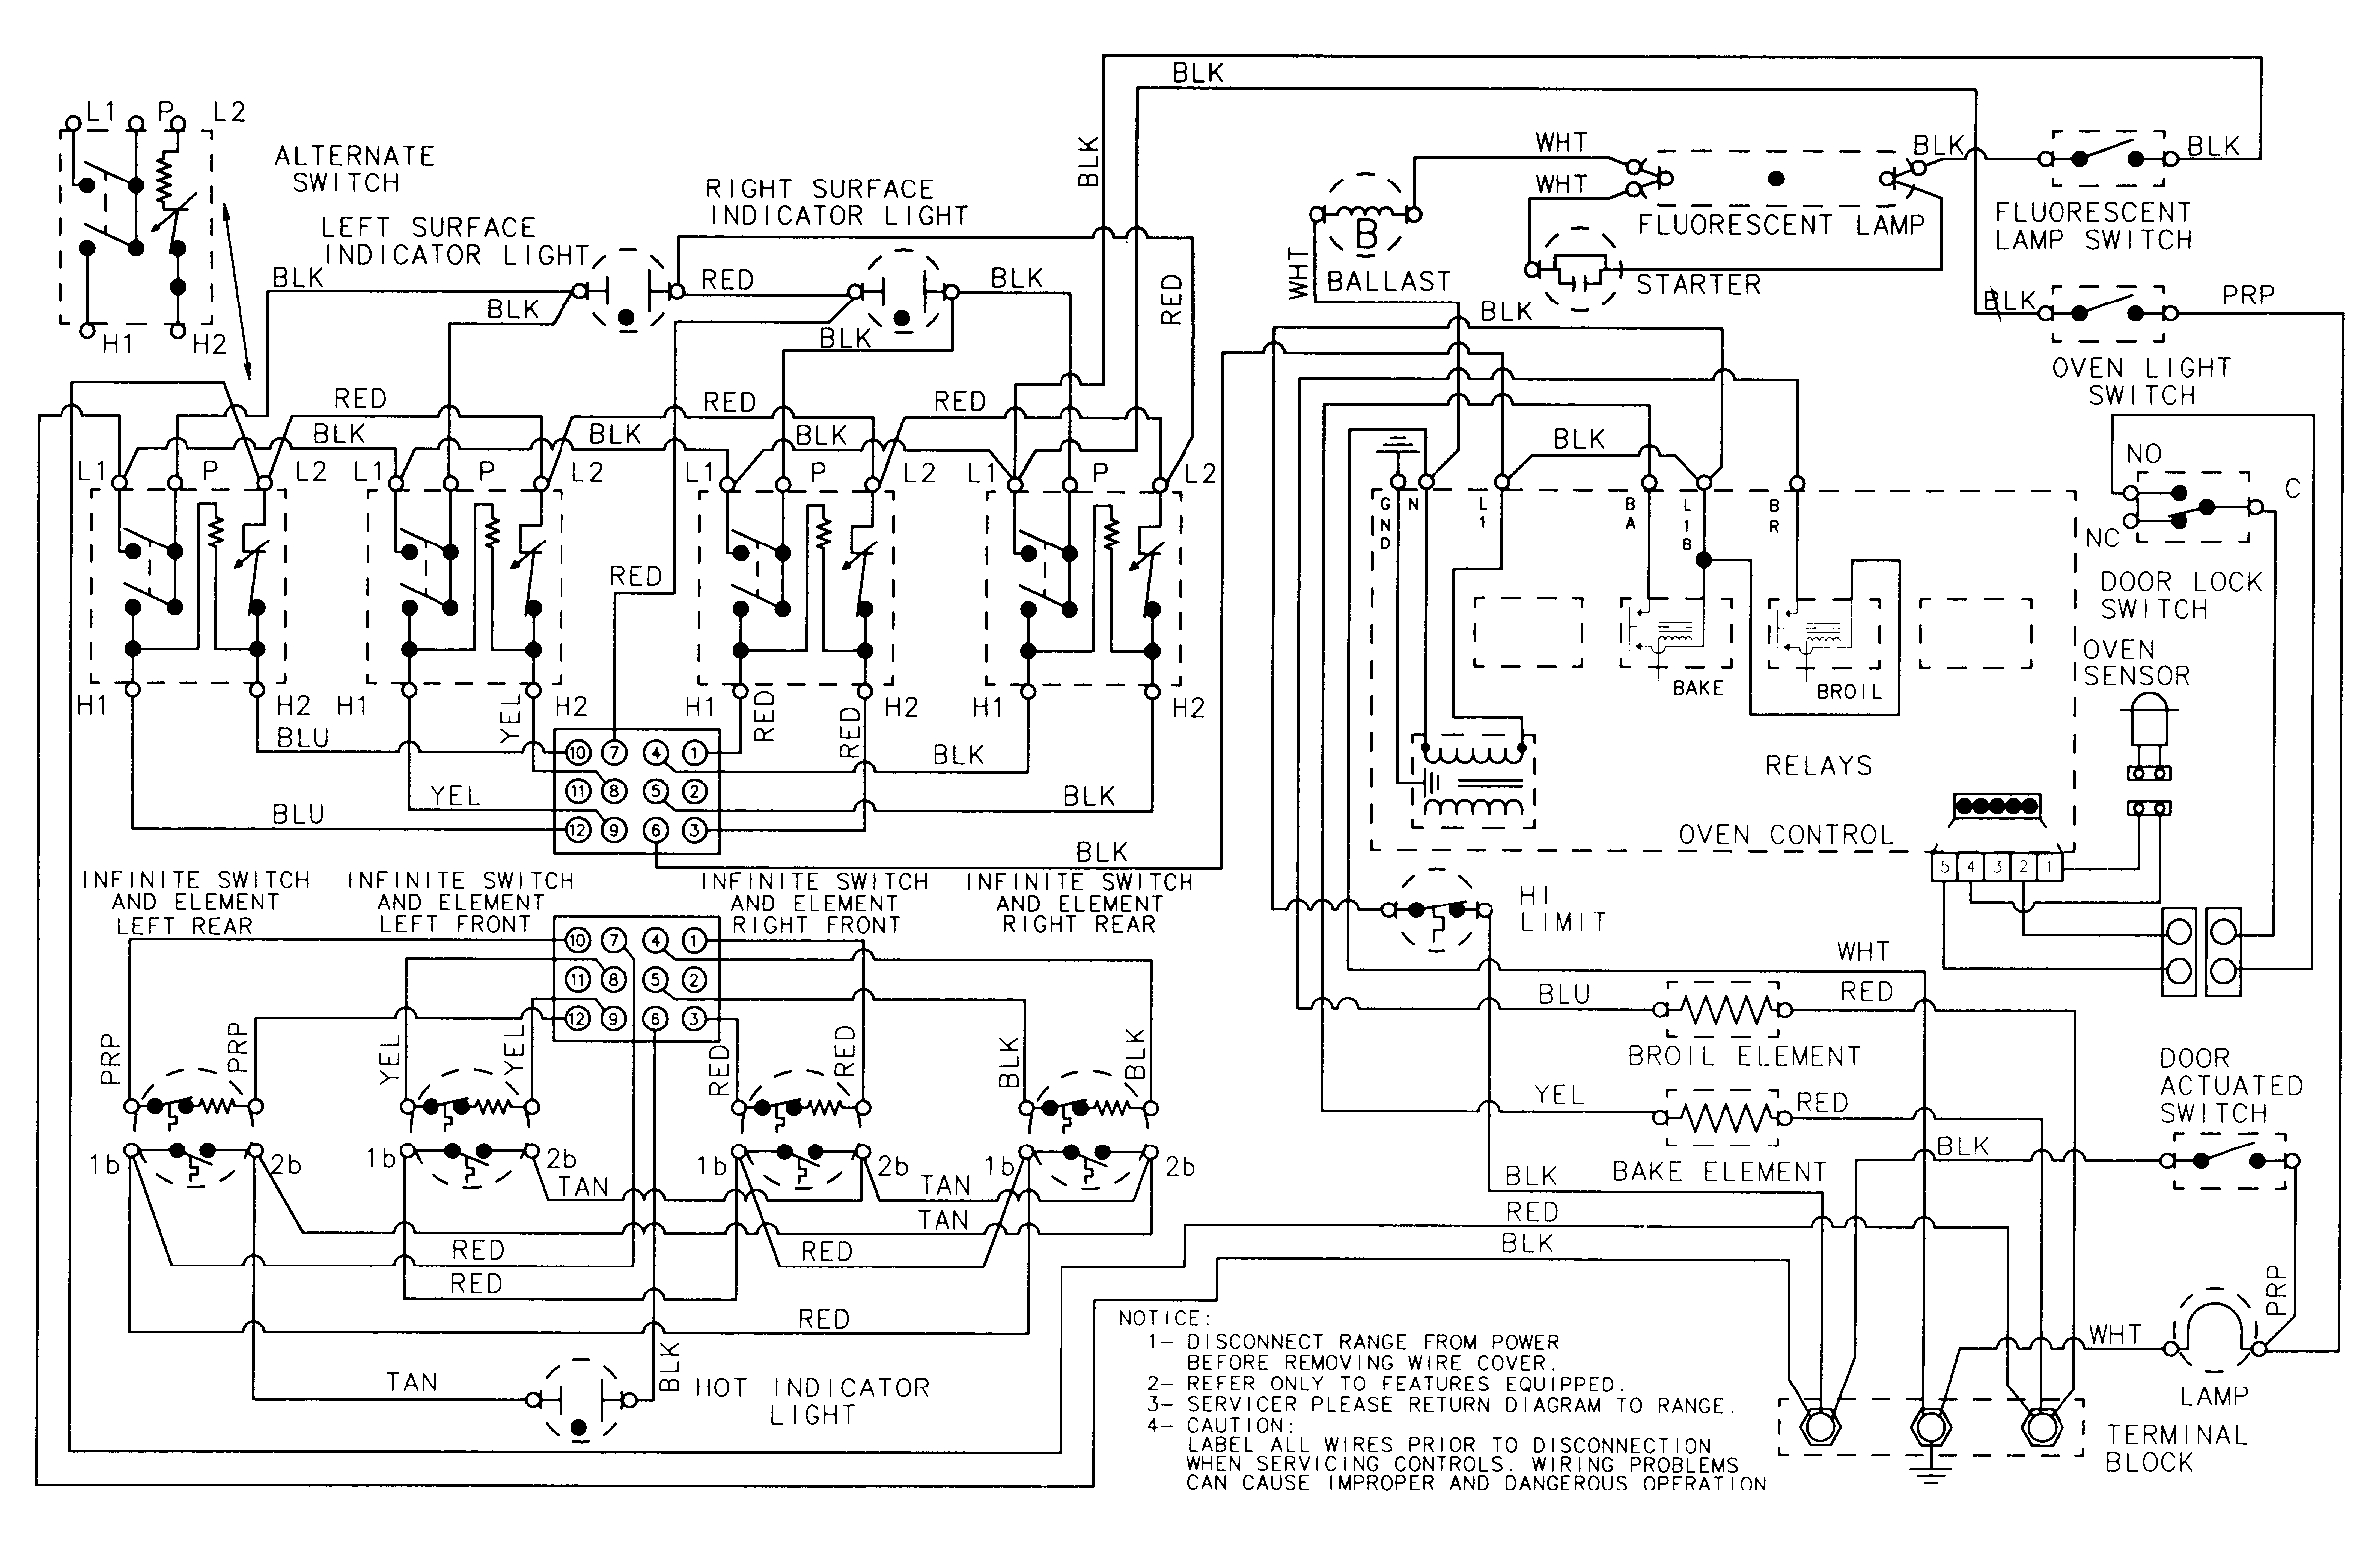 whirlpool dishwasher wiring diagram collection wiring collection  westinghouse wiring diagrams whirlpool dishwasher wiring diagram collection  whirlpool